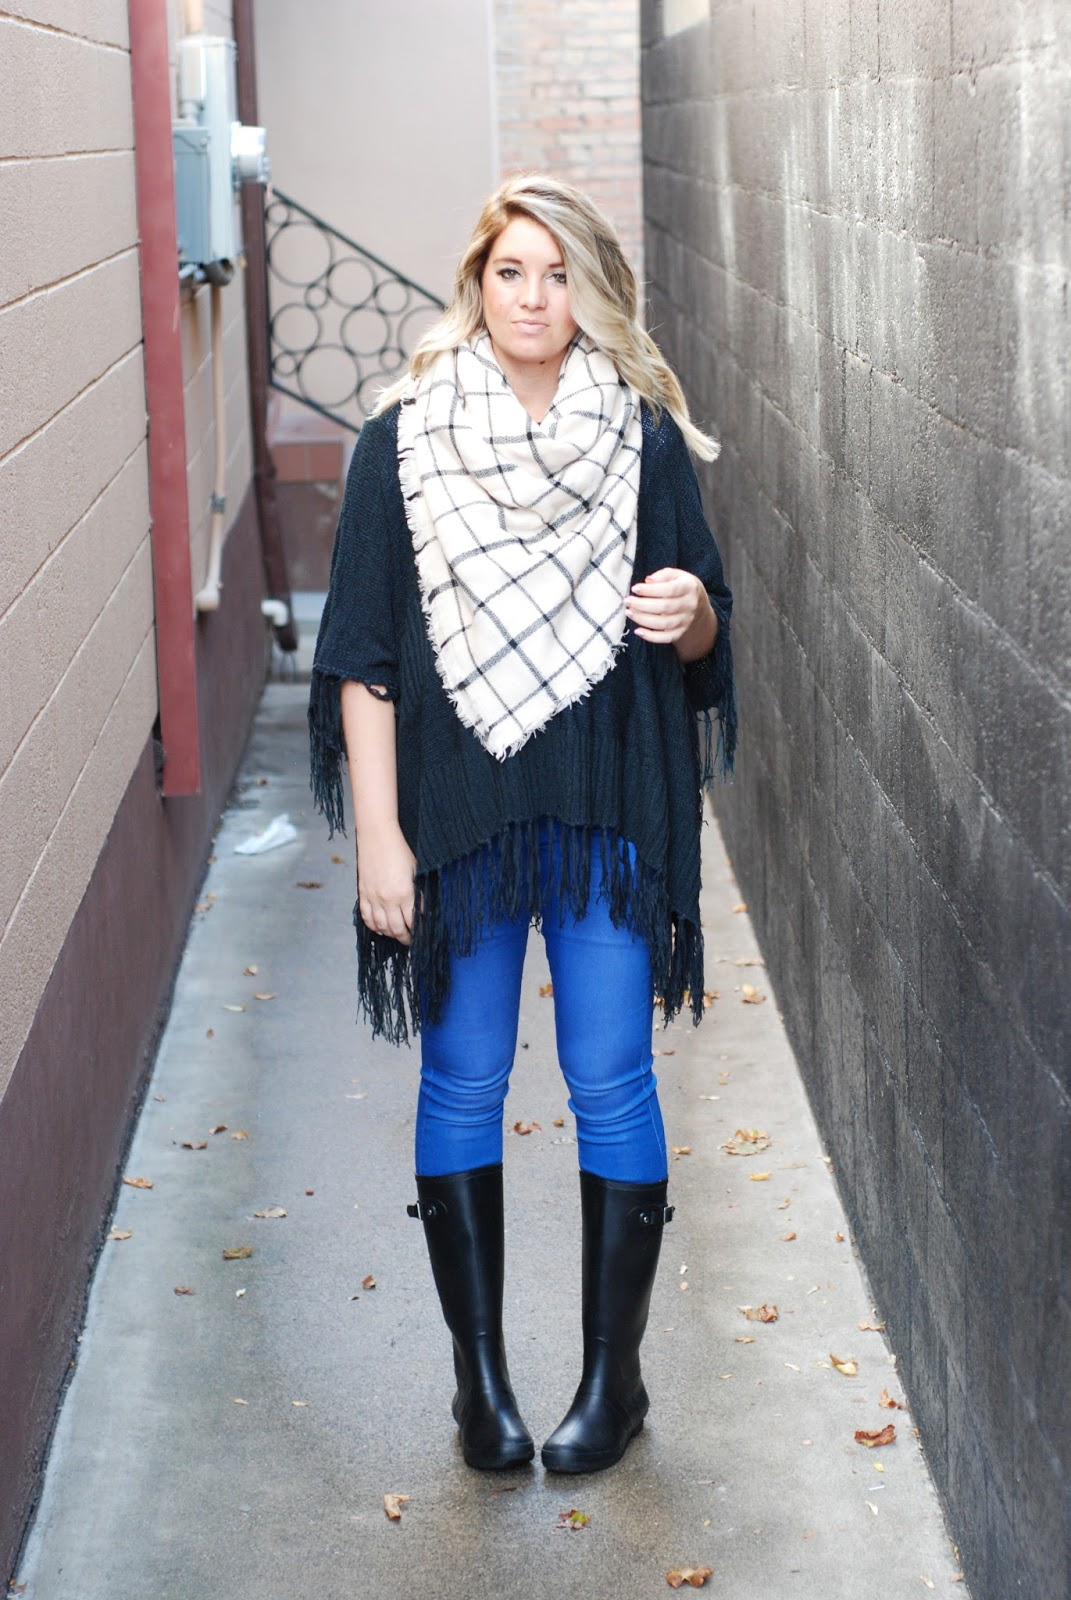 Rainy Day Outfit, Fall Outfit, Layered Outfit, Fashion Blogger